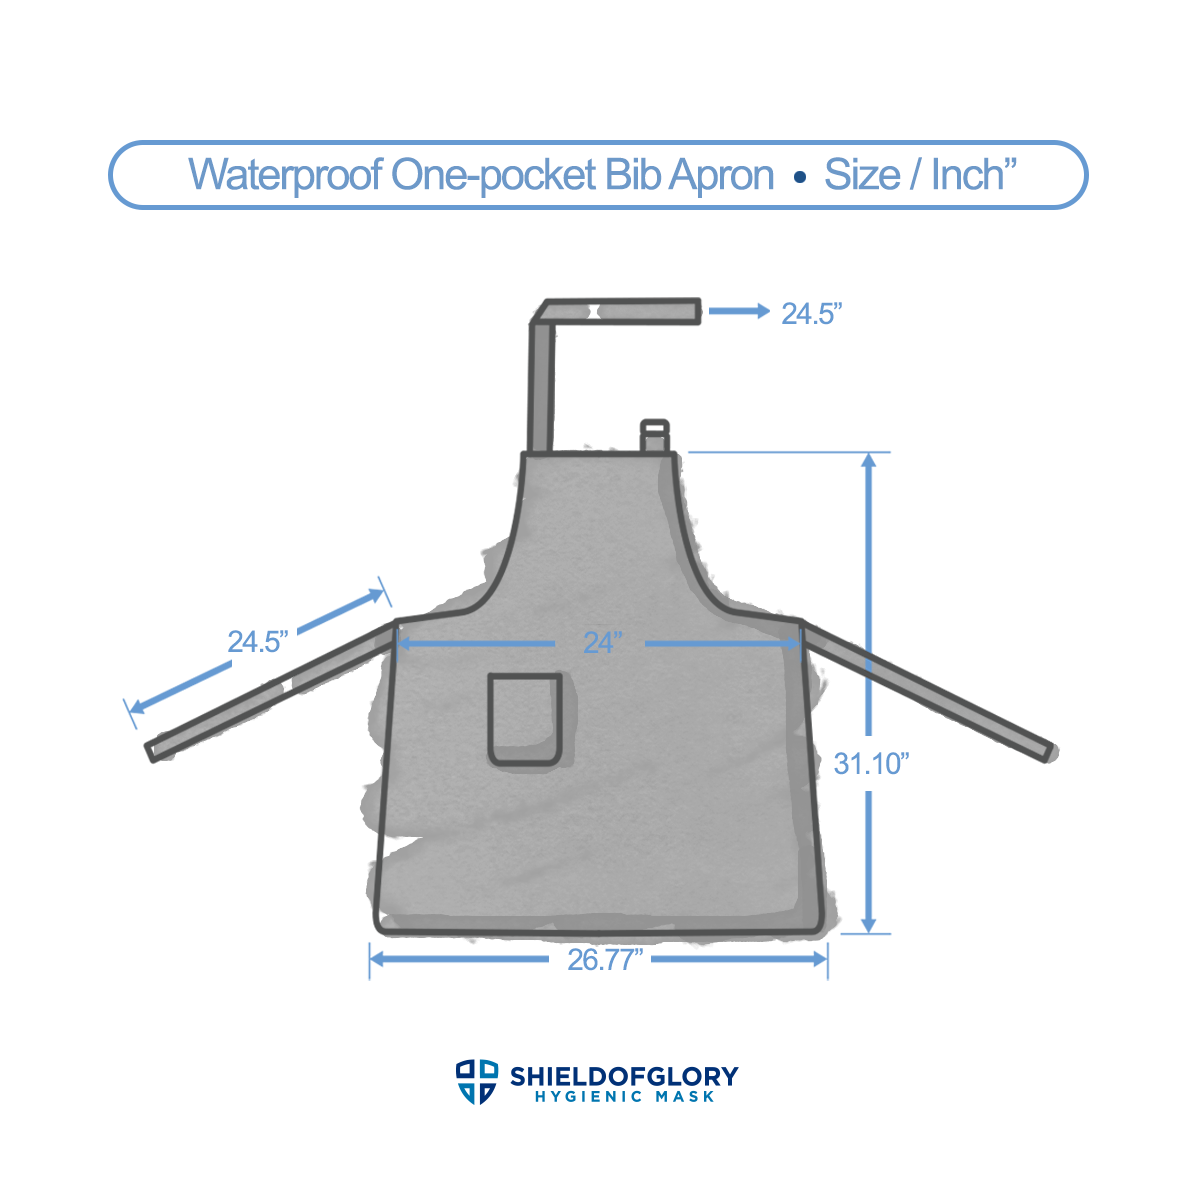 Waterproof One-pocket Bib Apron